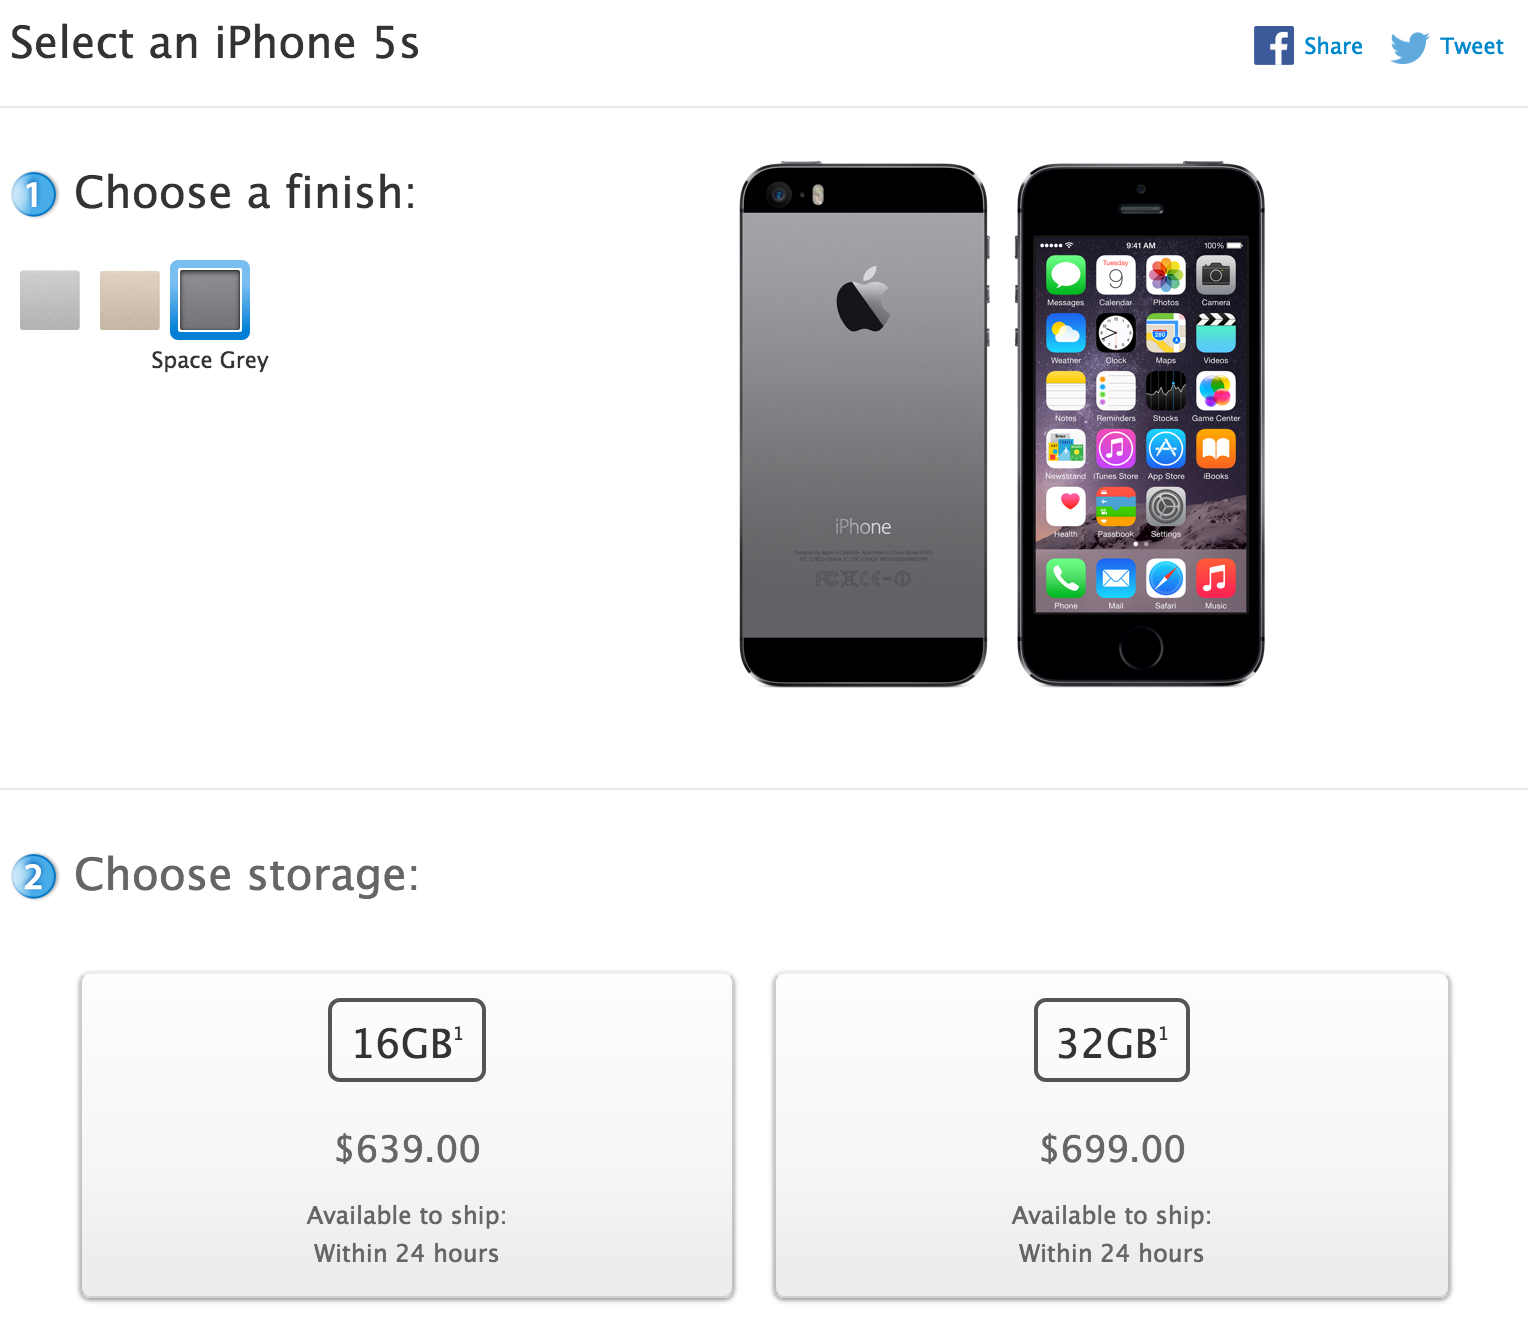 iphone 5s prices iphone 5s and iphone 5c prices drop after new phone launch 11231